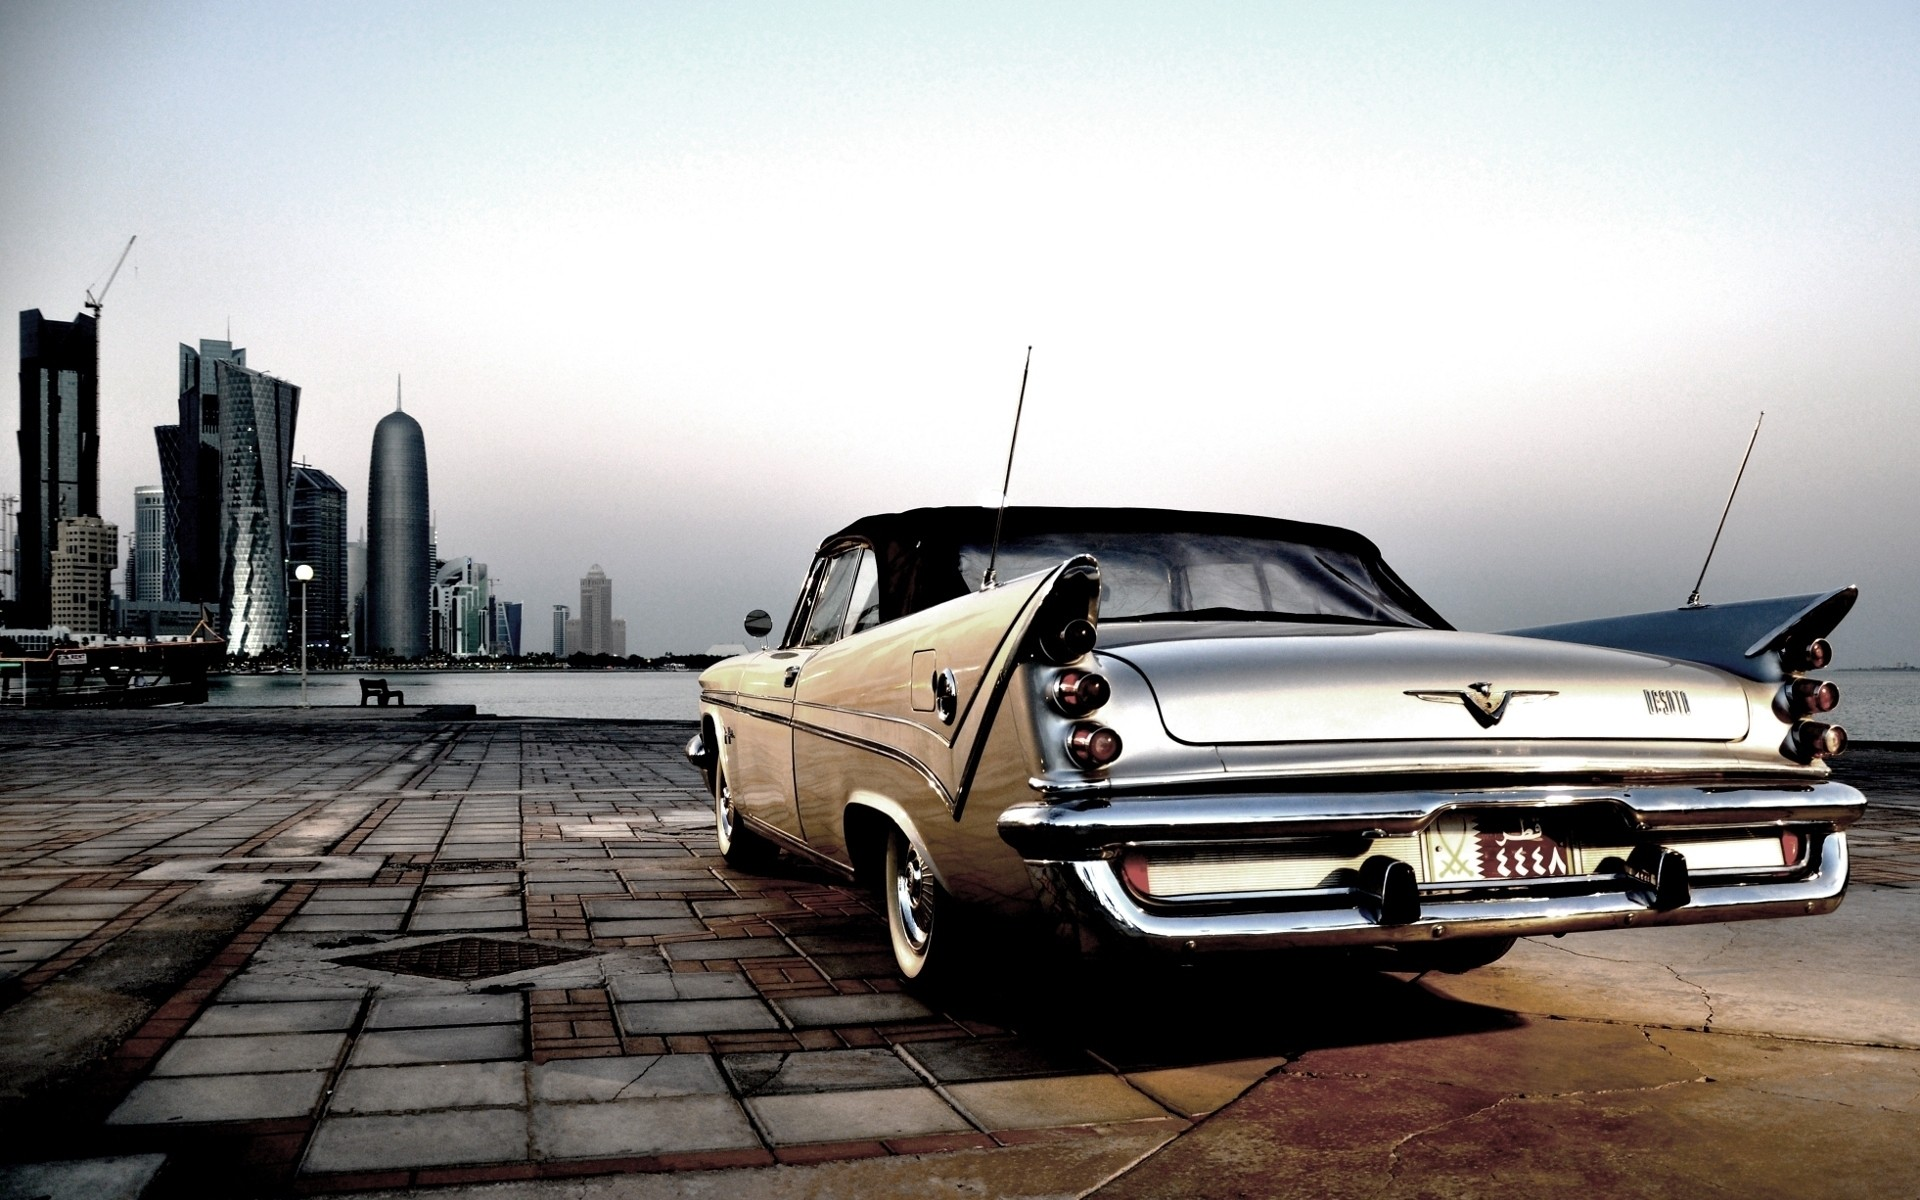 Chrysler 300 old classic car pictures for desktop and wallpaper 1920x1200